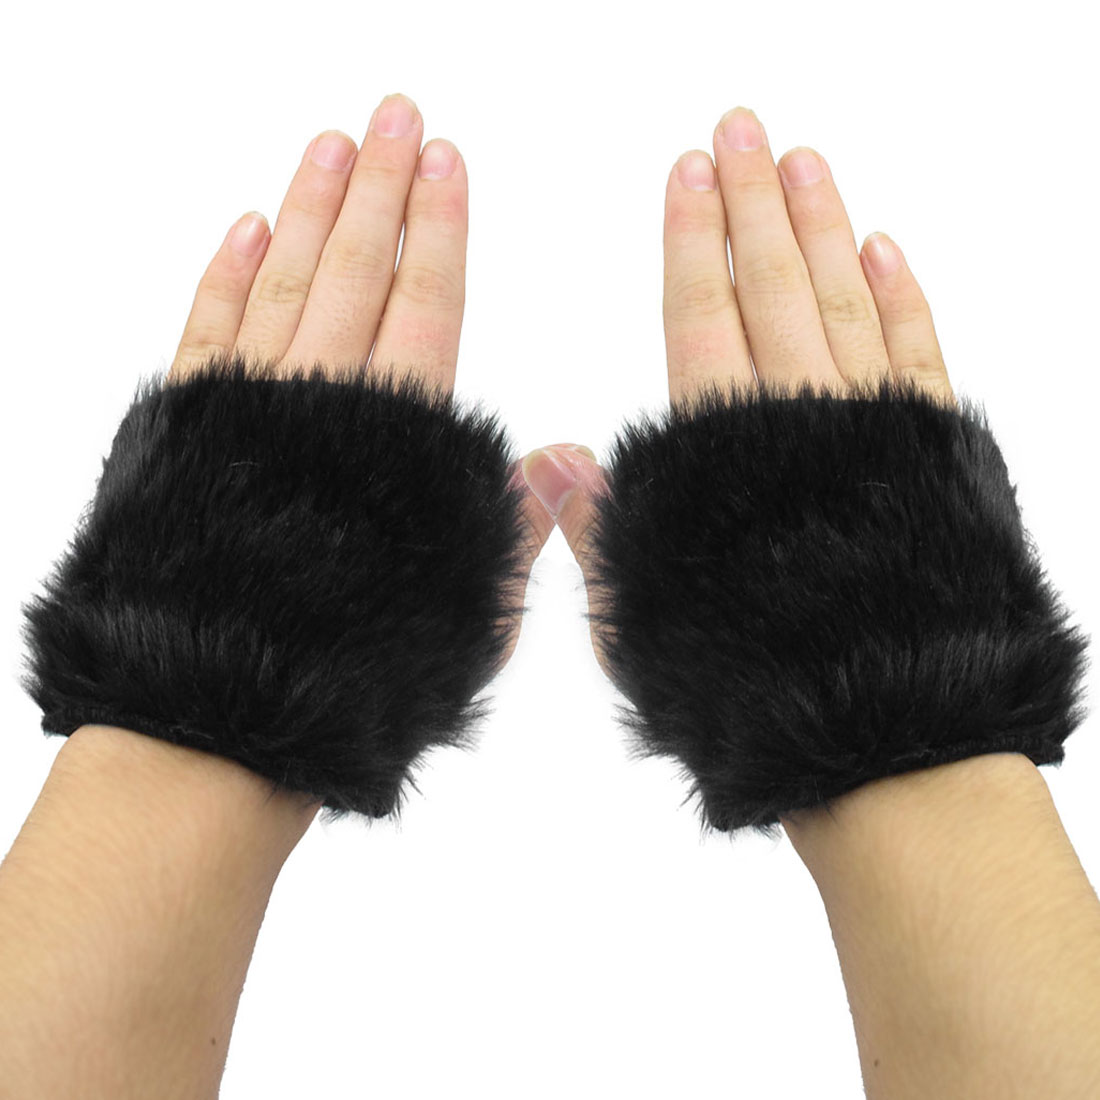 Pair Black Fingerless Faux Fur Covered Winter Hand Warmer Gloves for Ladies